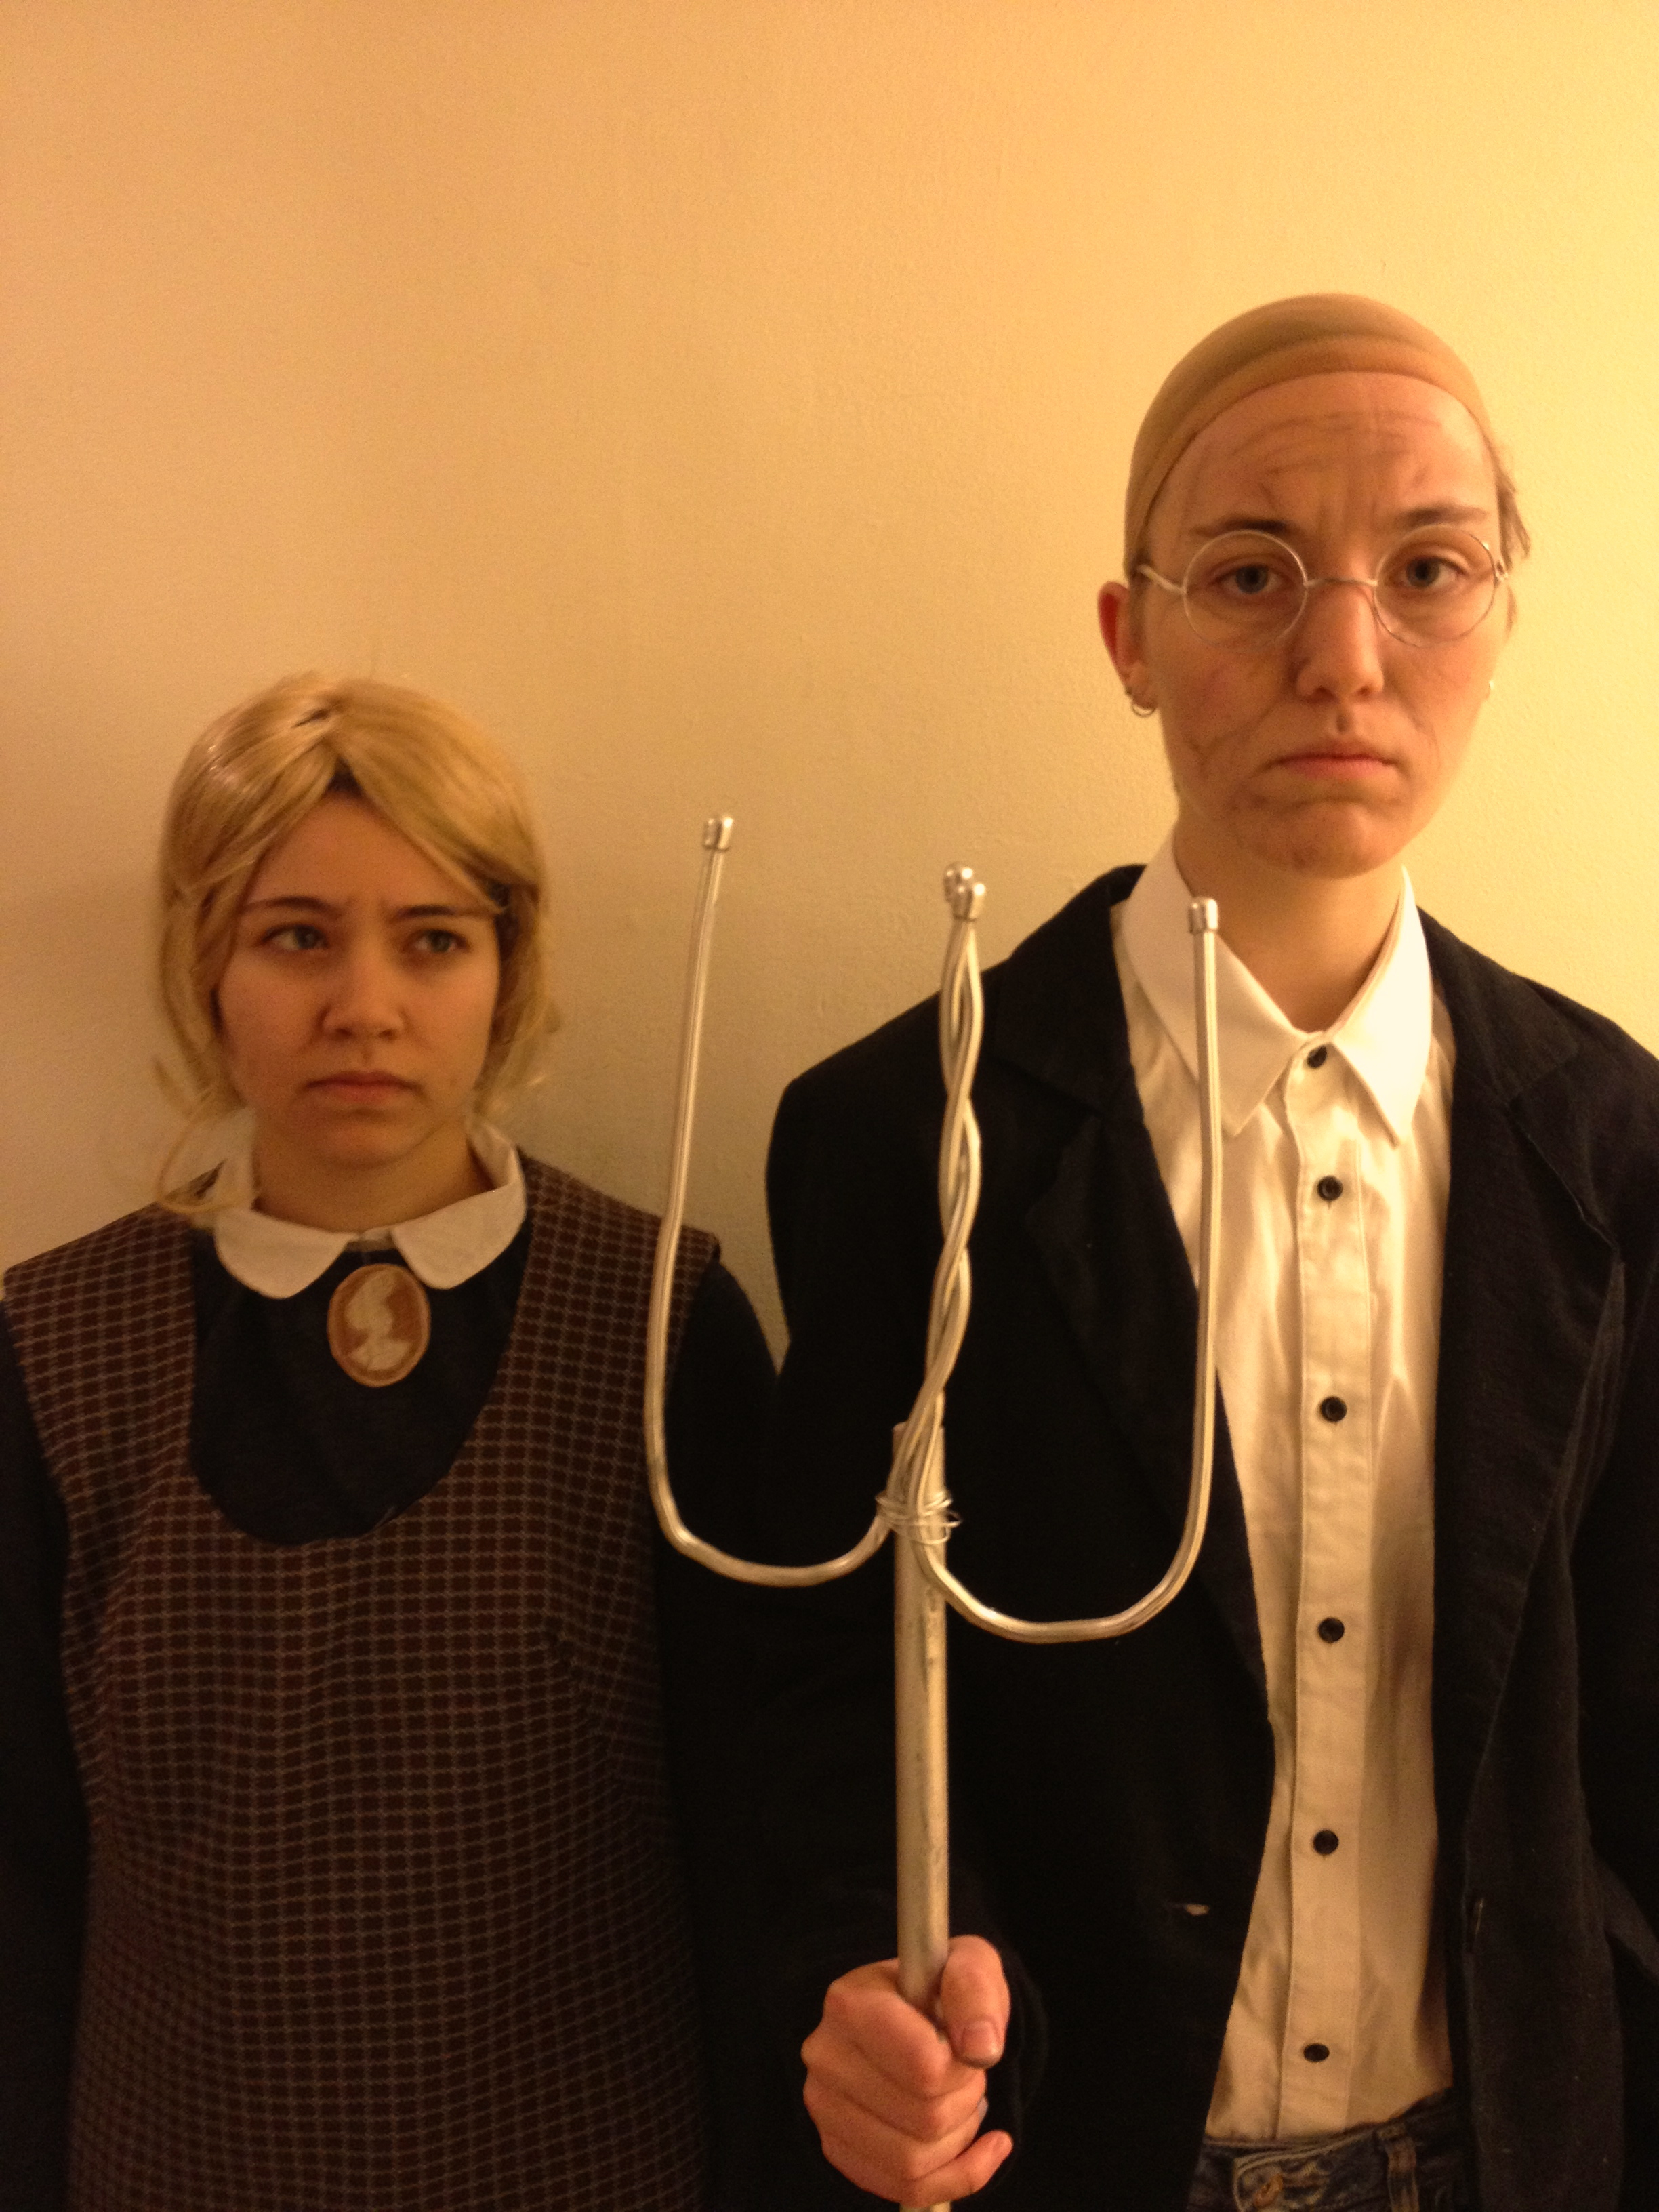 Our Halloween Costume Inspired By American Gothic